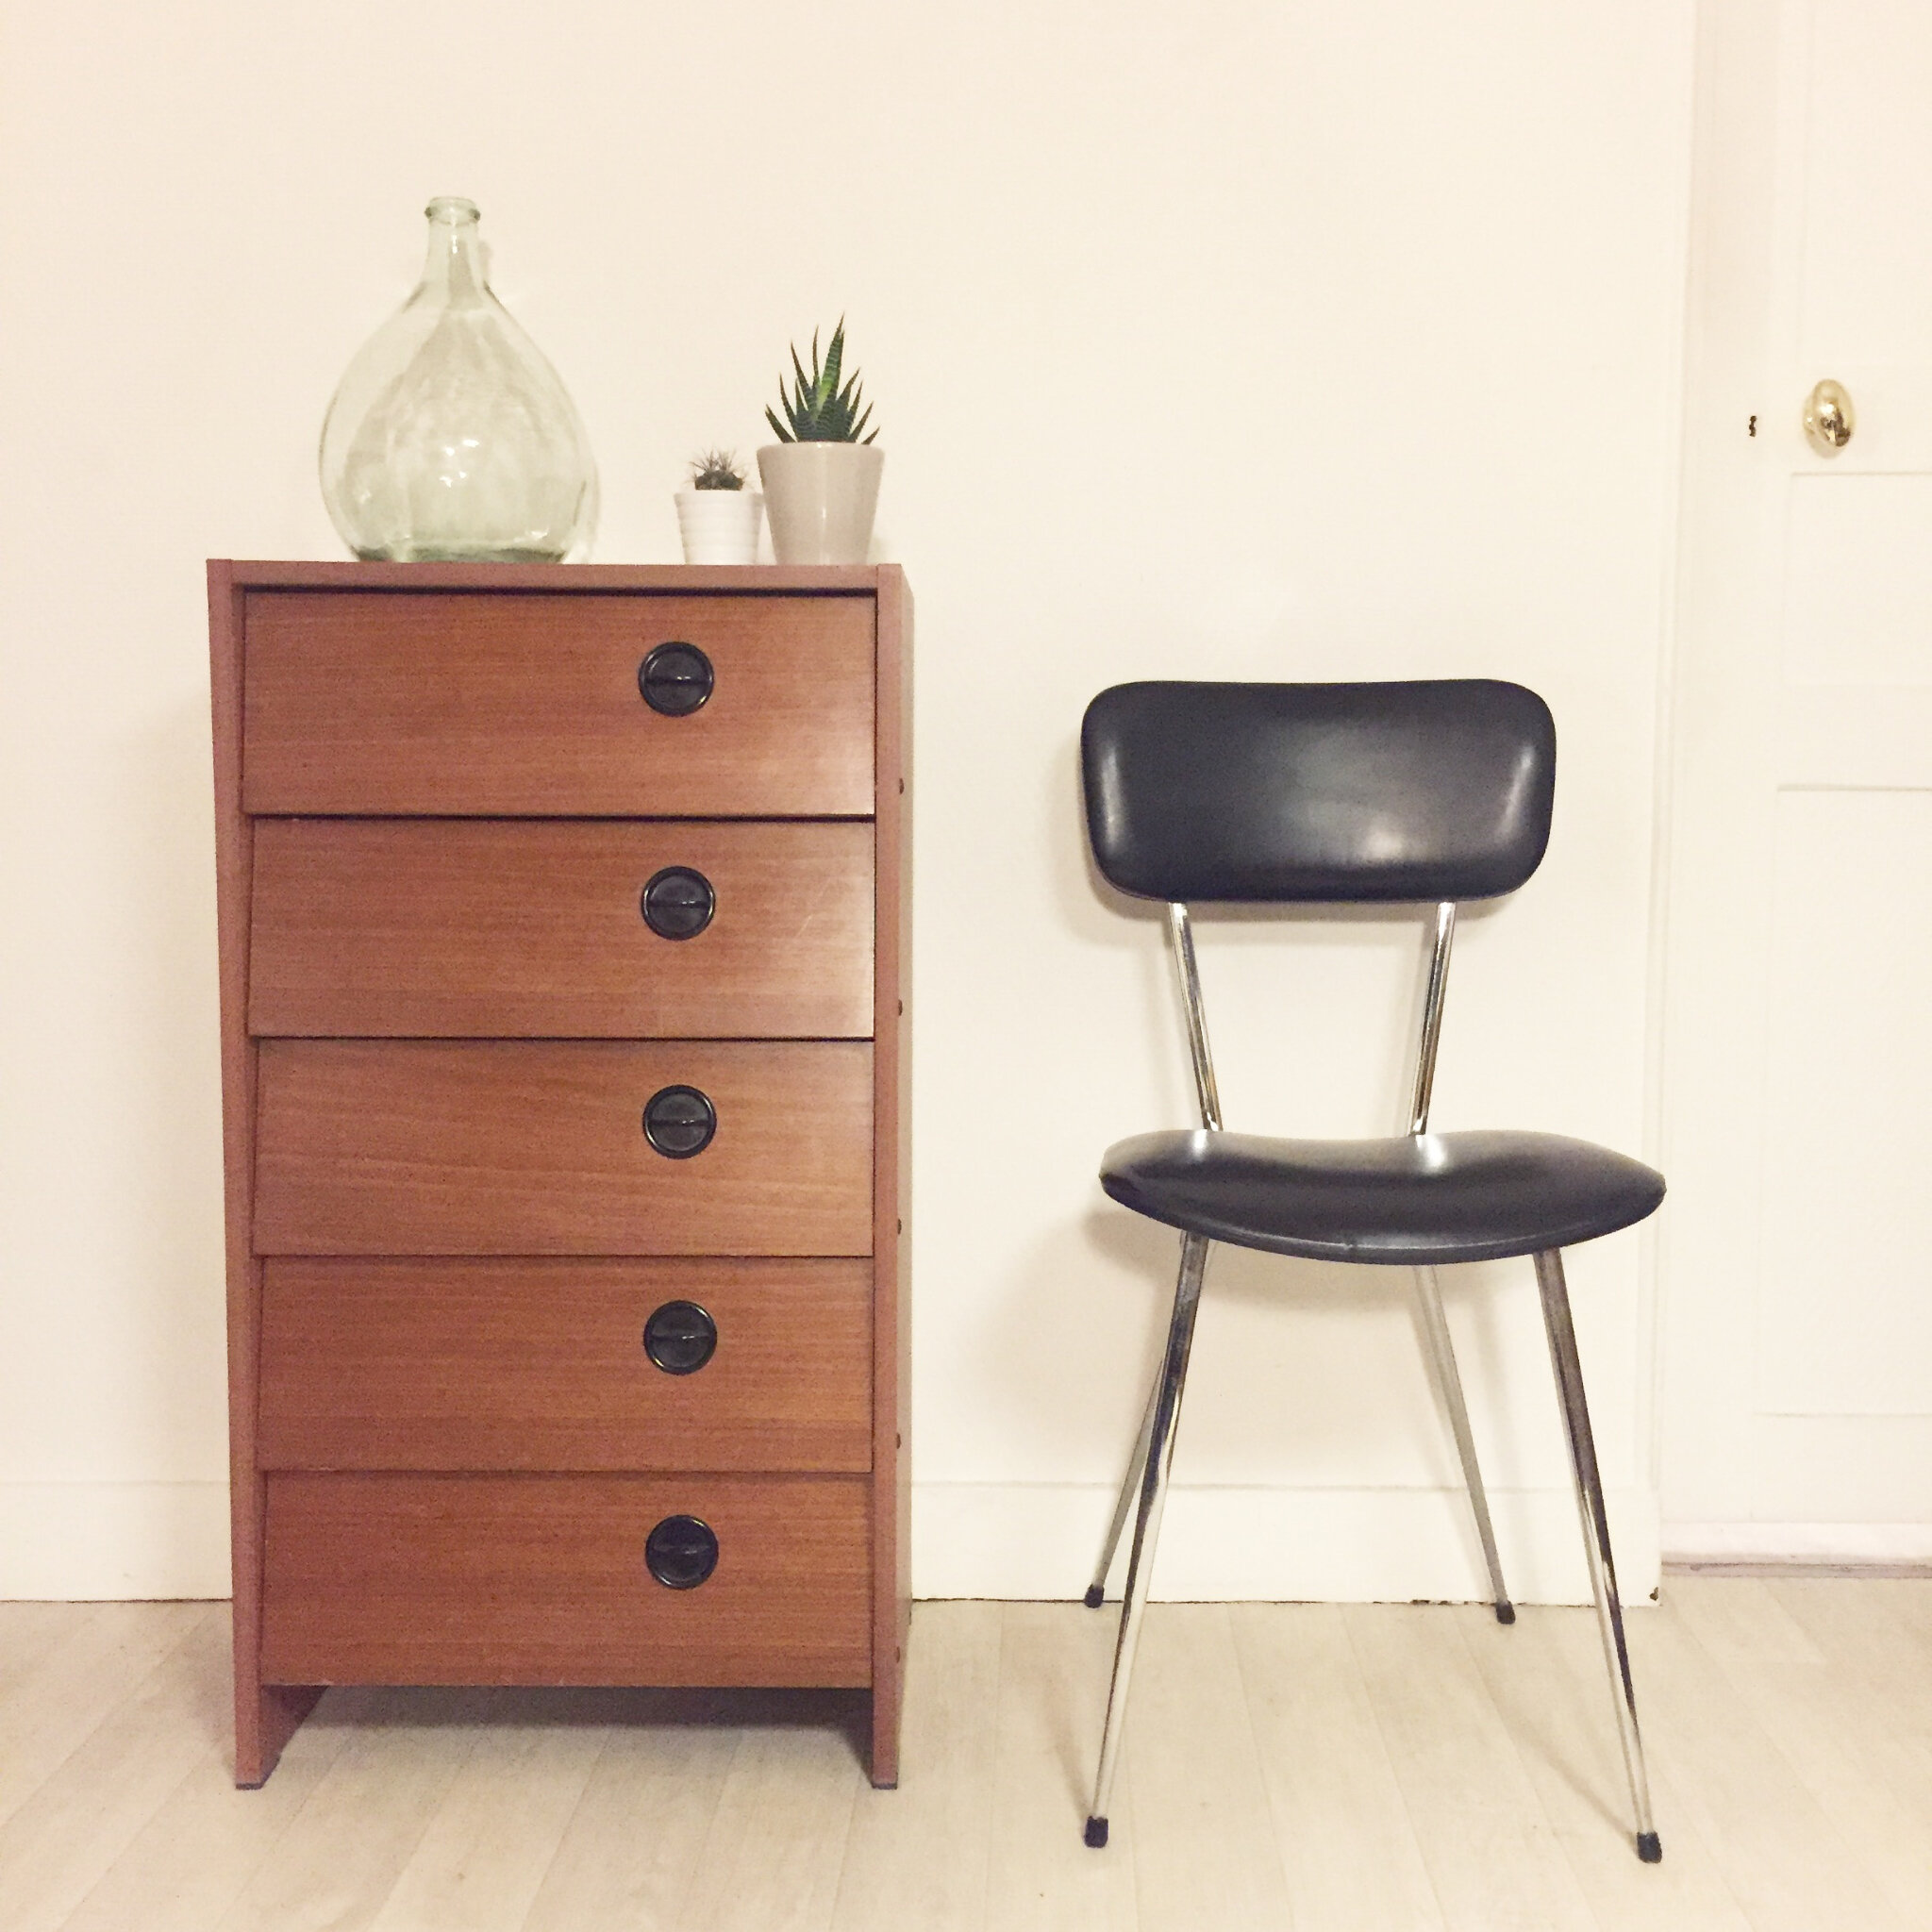 magnifique meuble chaussures vintage les trocanteuses. Black Bedroom Furniture Sets. Home Design Ideas